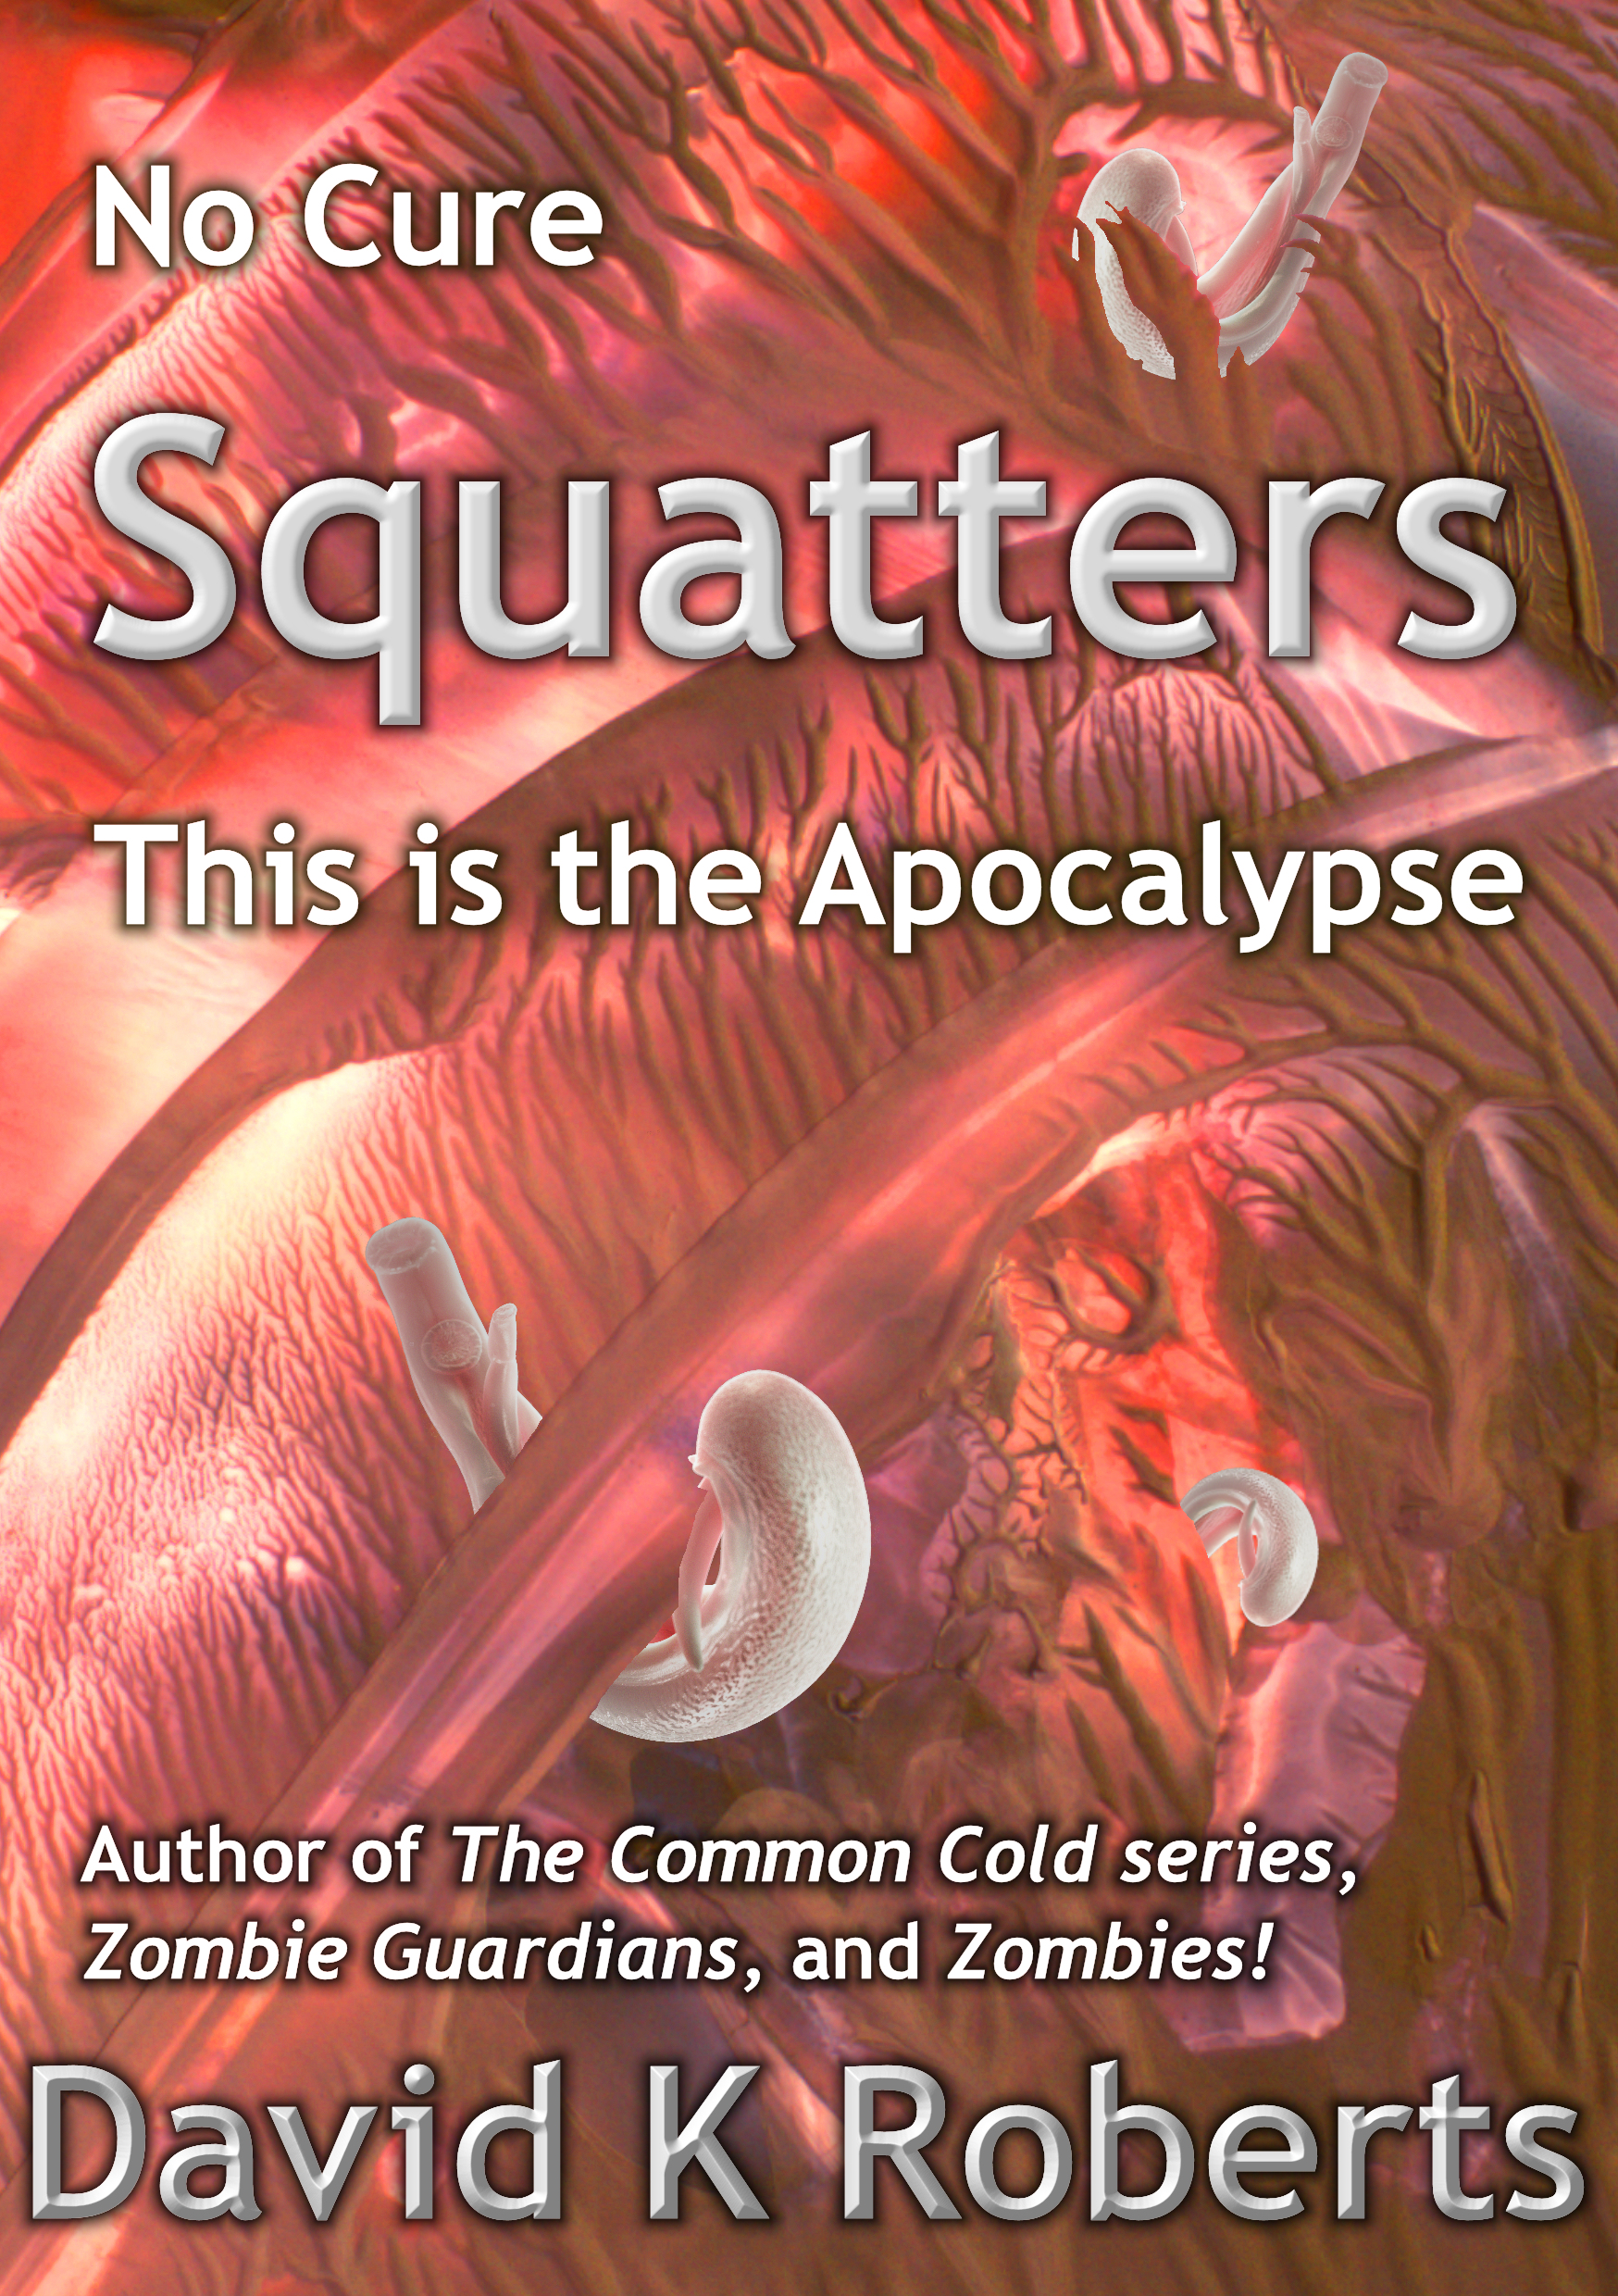 squatters horror zombie zombies apocalypse armageddon scifi sci-fi science fiction david k roberts